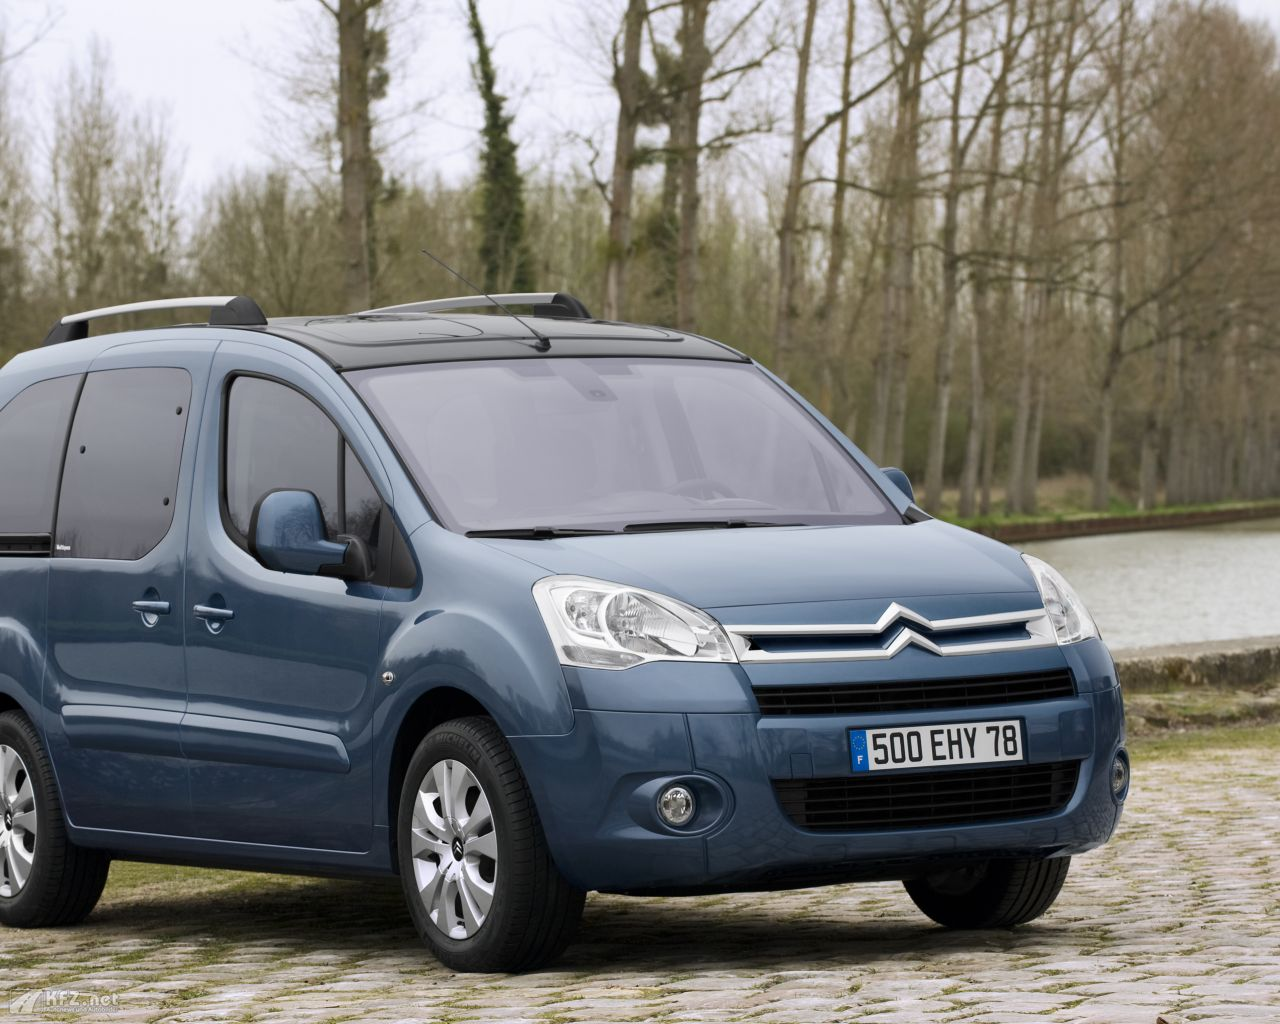 citroen-berlingo-1280x1024-51